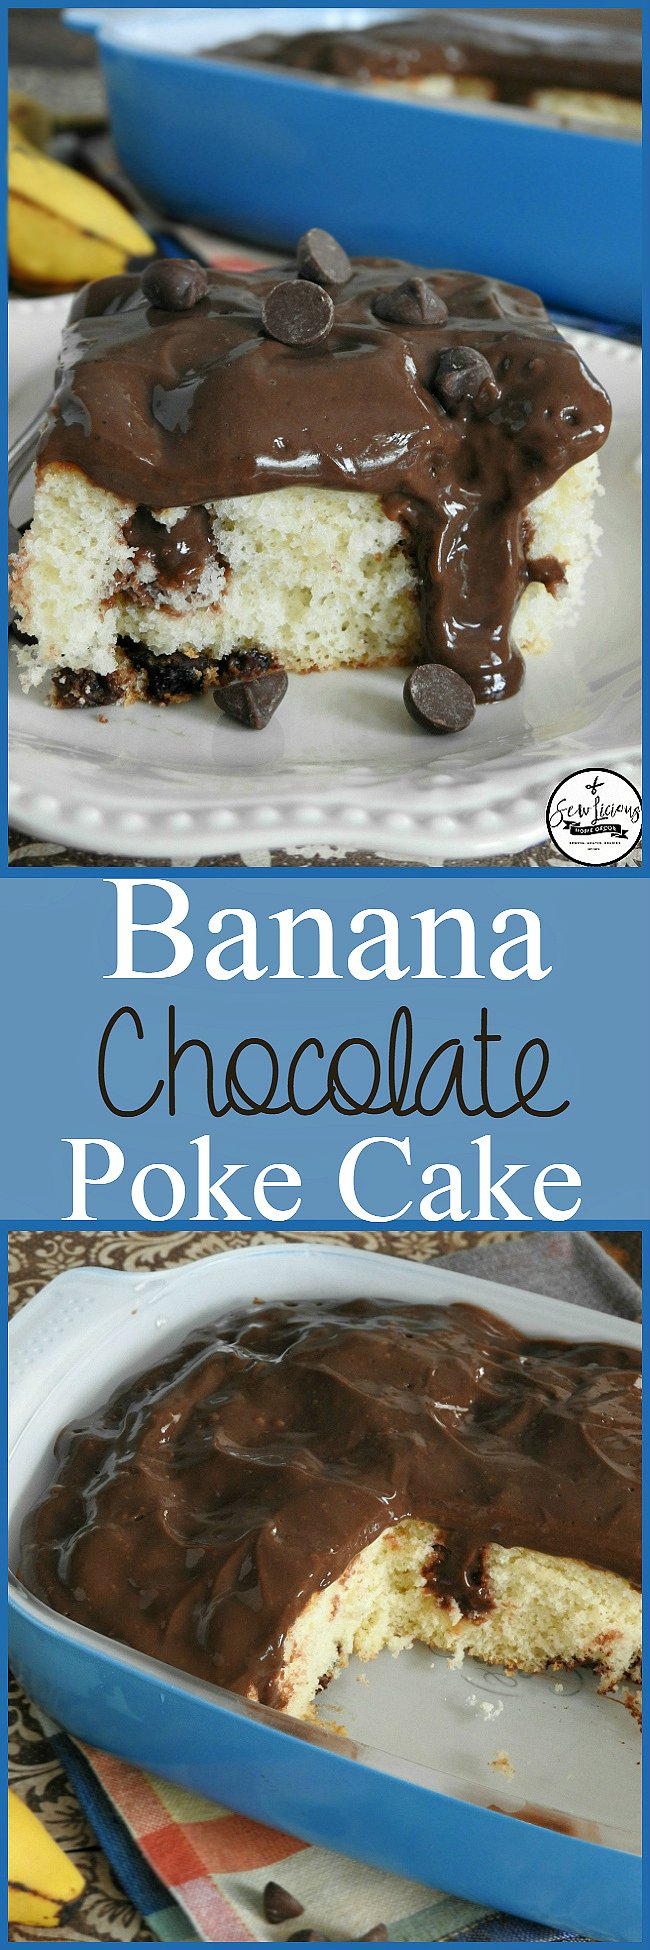 Banana poke cake with chocolate pudding. The perfect two combinations.sewlicioushomedecor.com